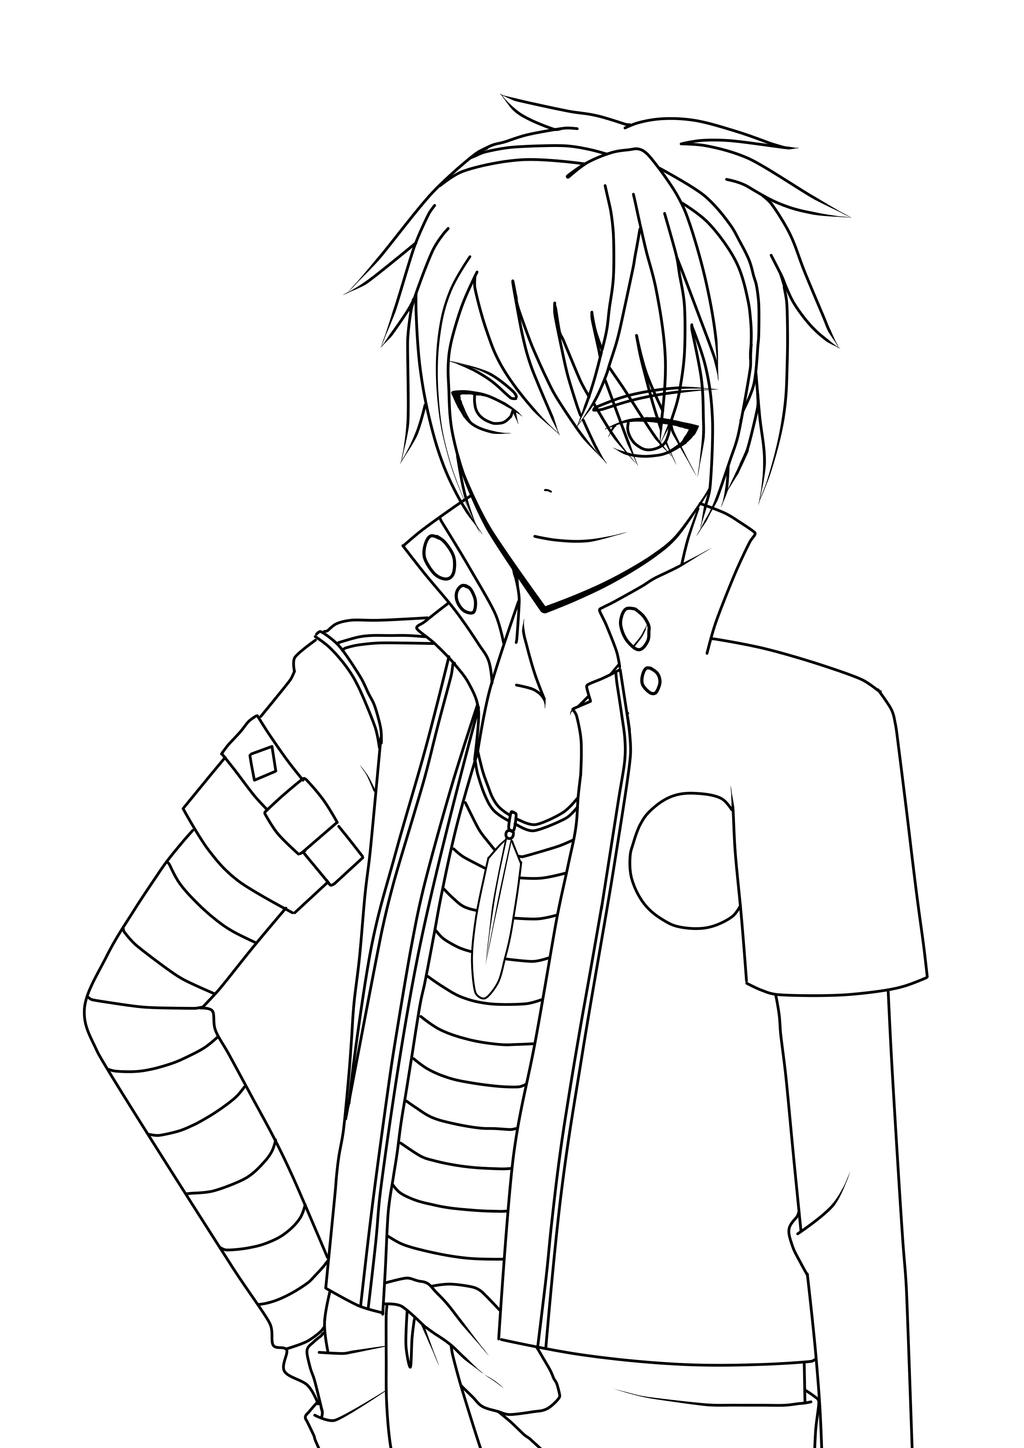 amnesia coloring pages - photo#5